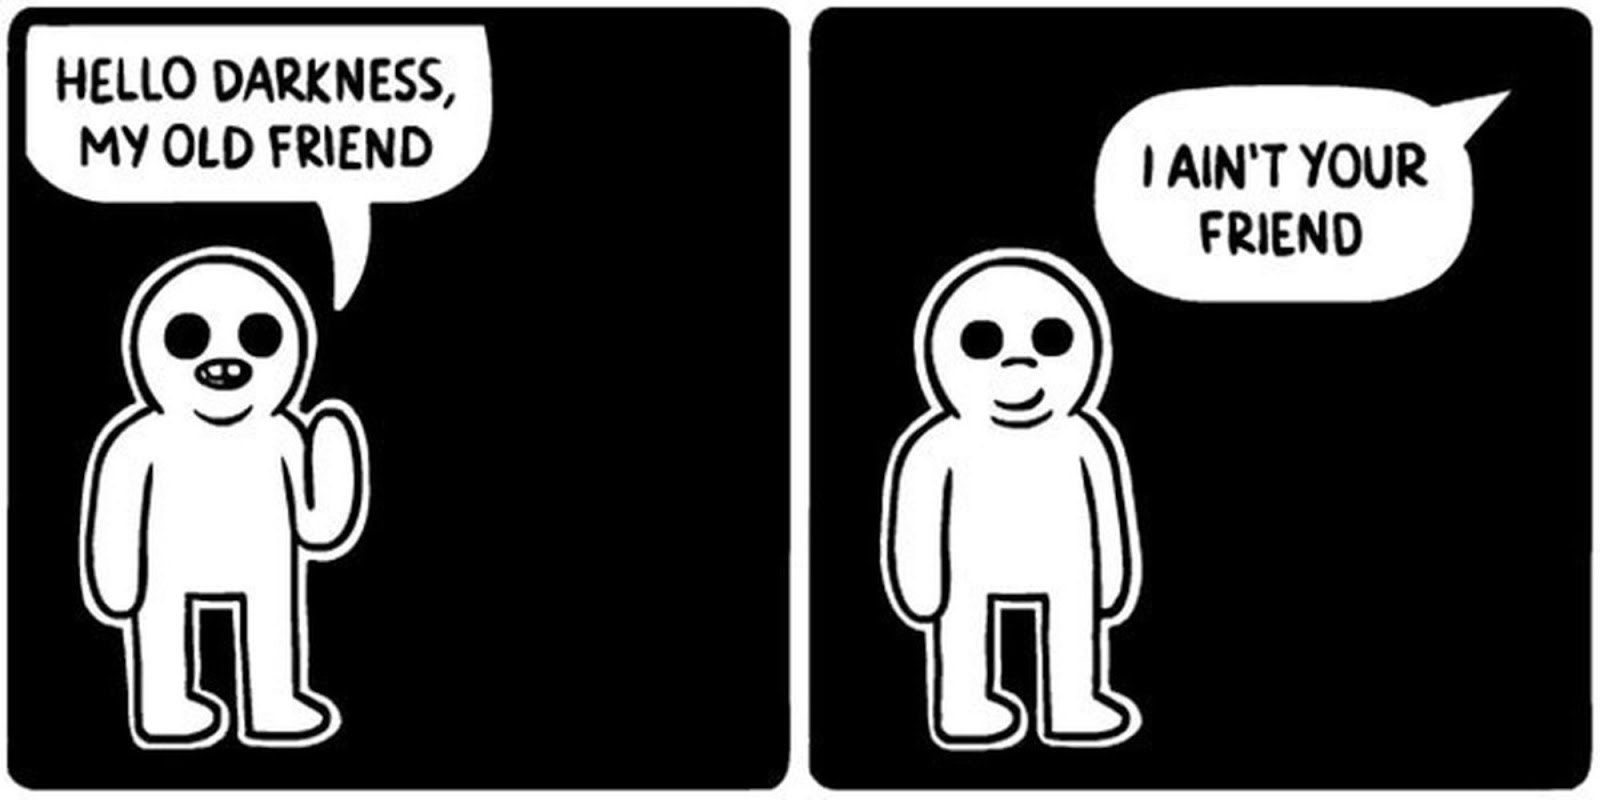 20 Brutally Hilarious Comics That Are Only For People With A Dark Sense of Humor